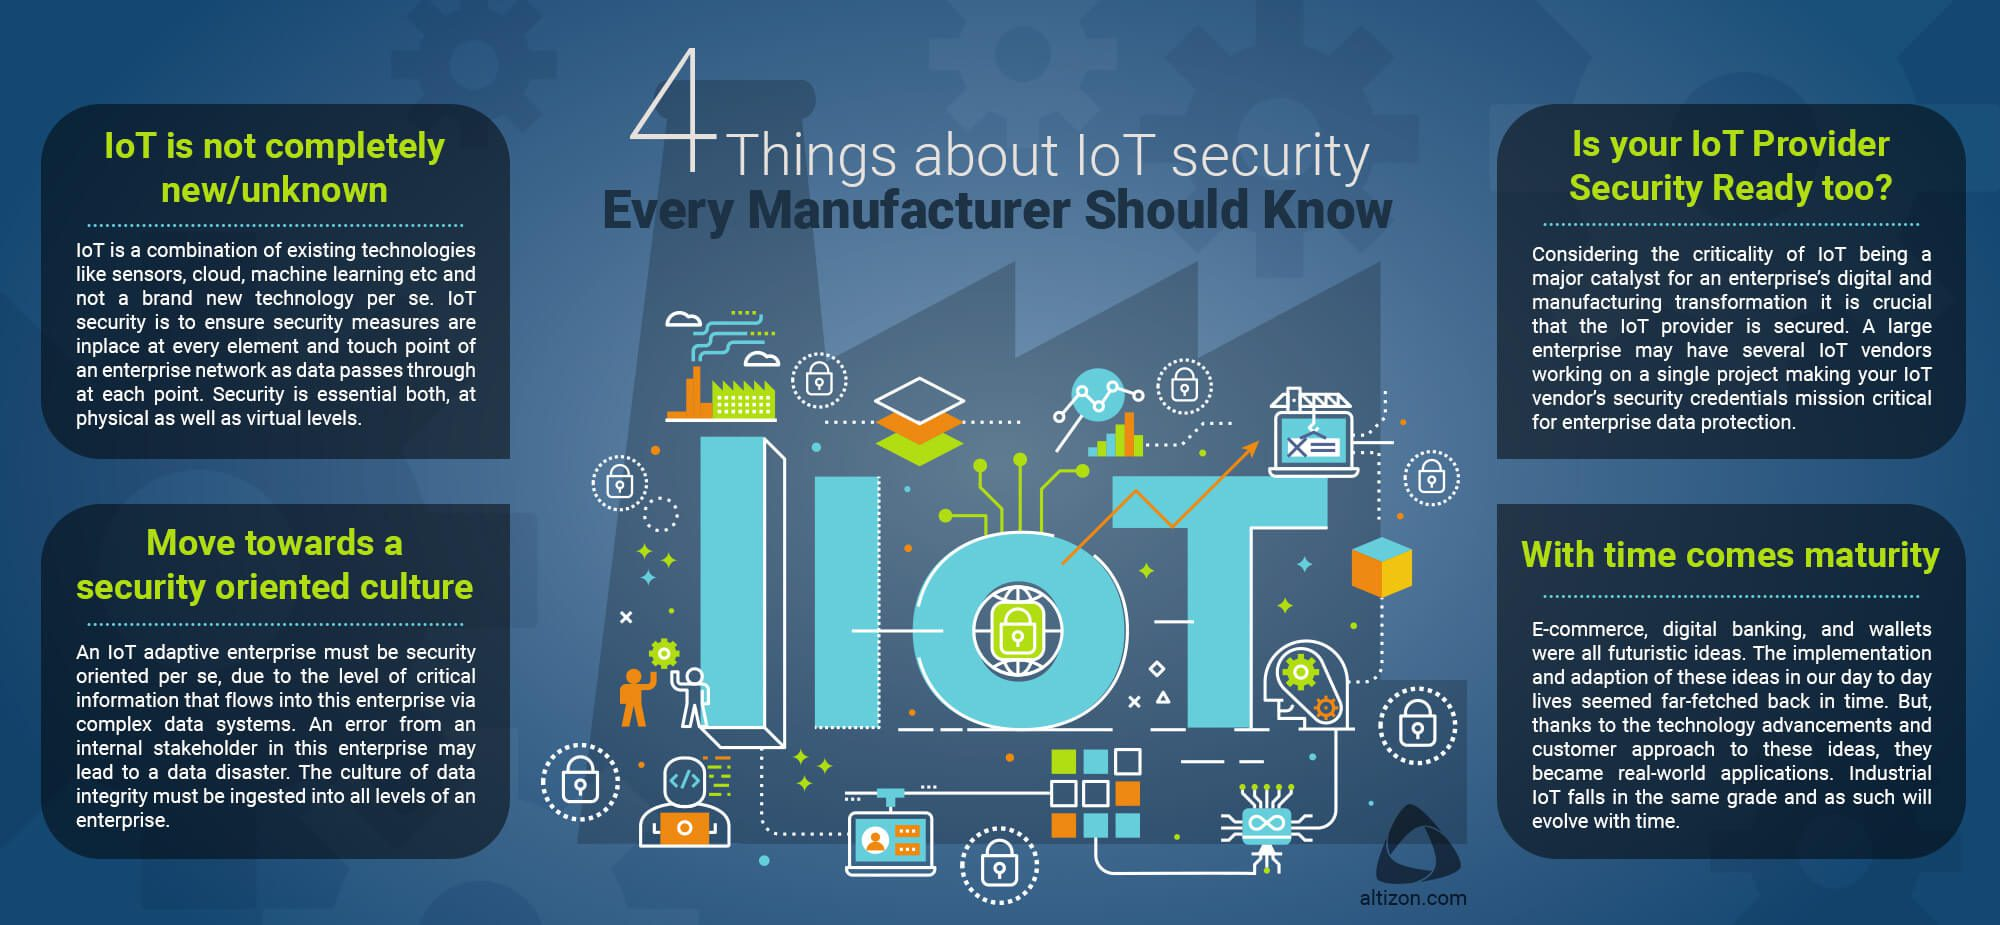 Technology Management Image: 4 Things About IoT Security Before Embarking On An